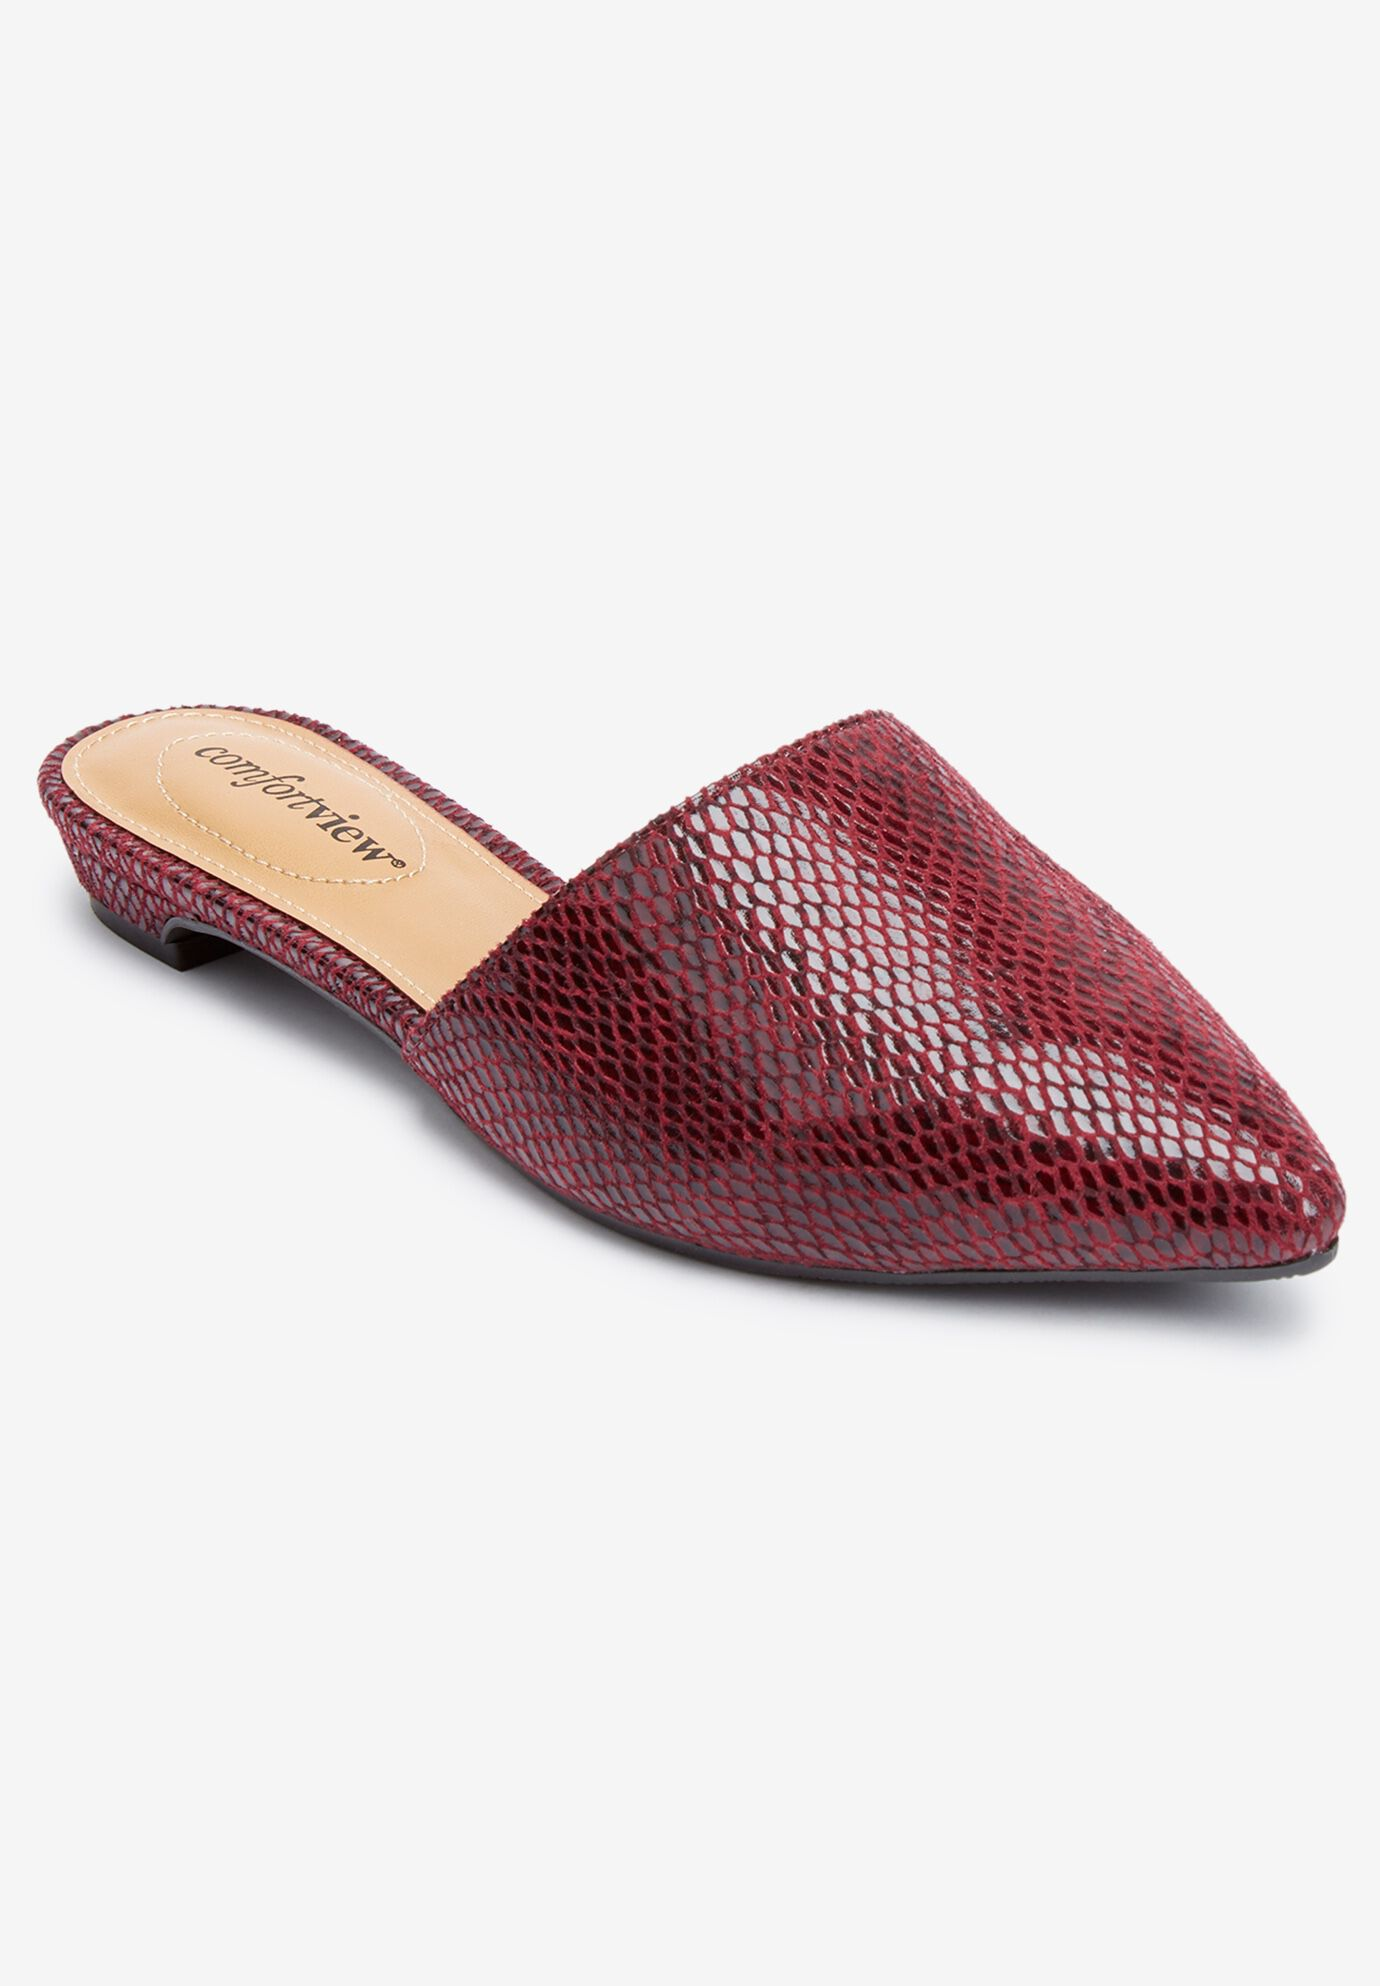 wide width mules buy clothes shoes online